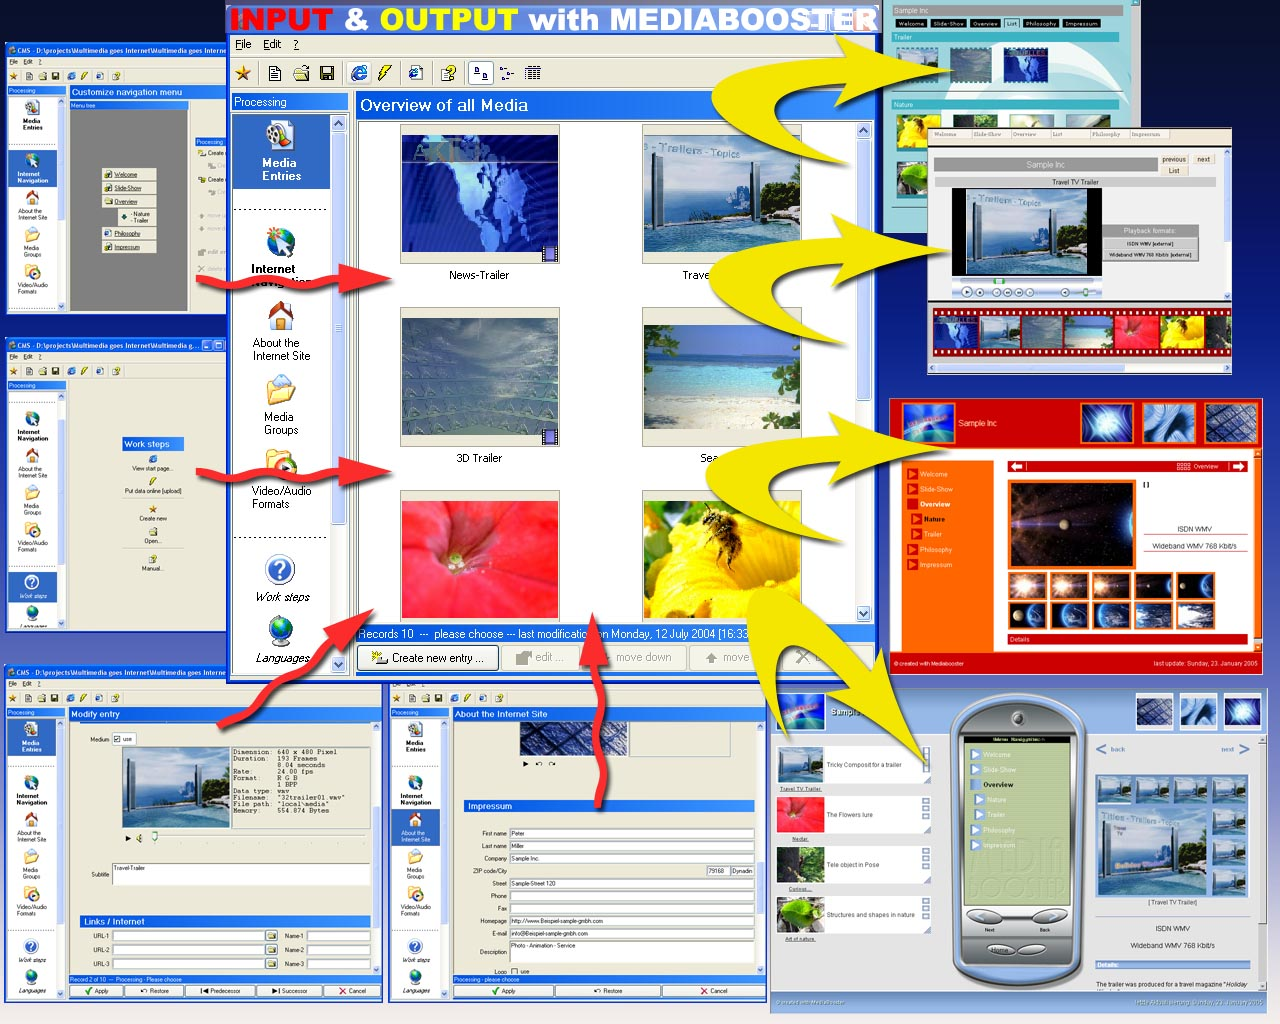 Mediabooster V1.2 software screenshot